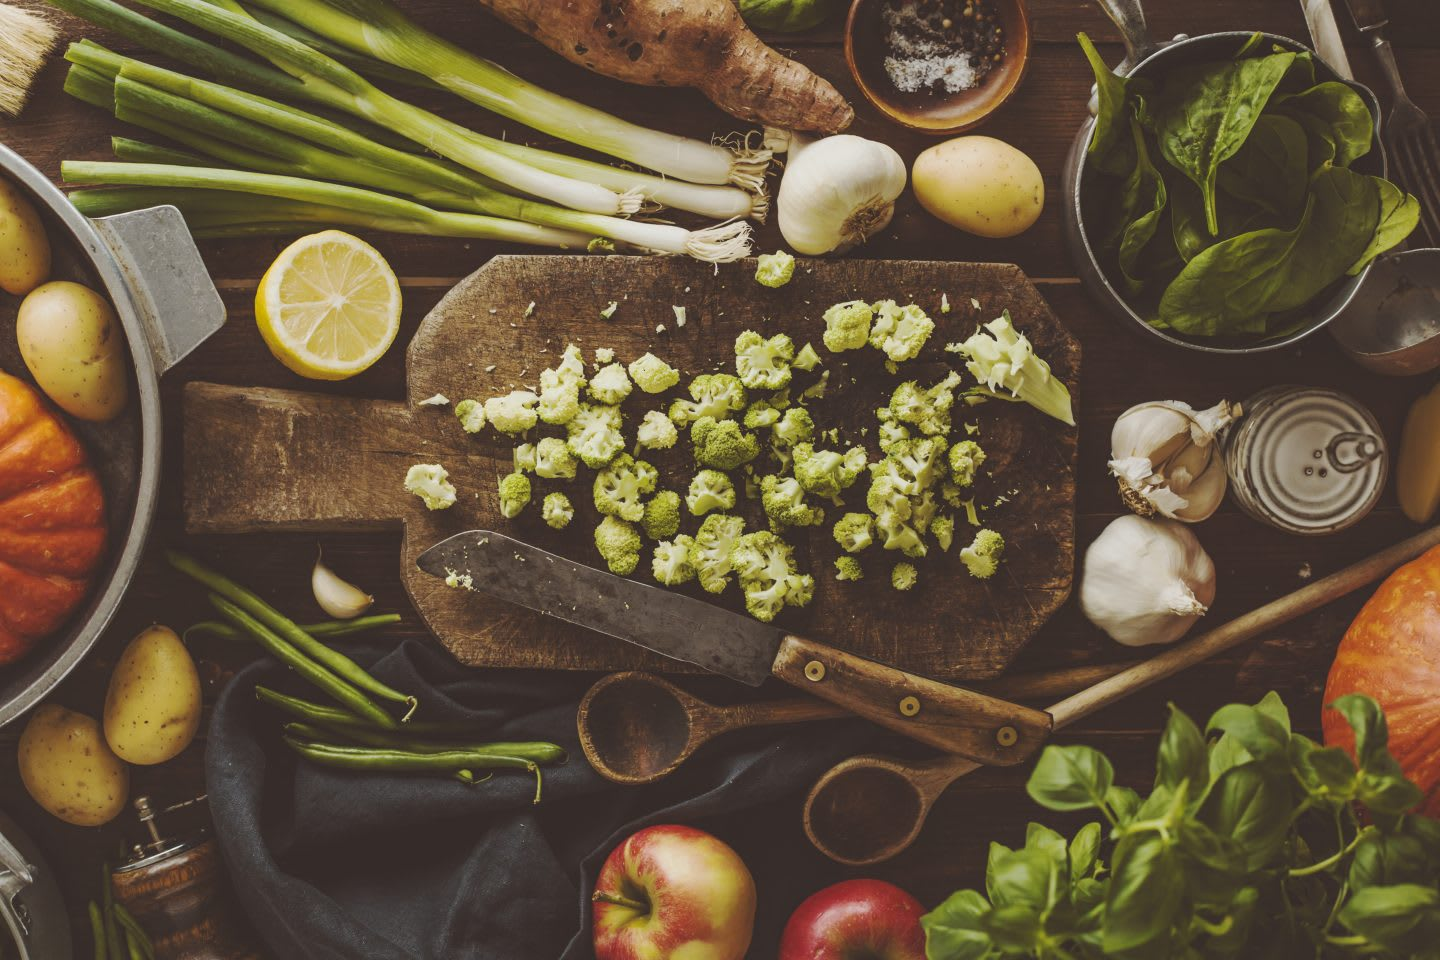 Cooking ingredients on the table in the kitchen, vegetables, healthy, cooking, preparation. recipe, holiday season